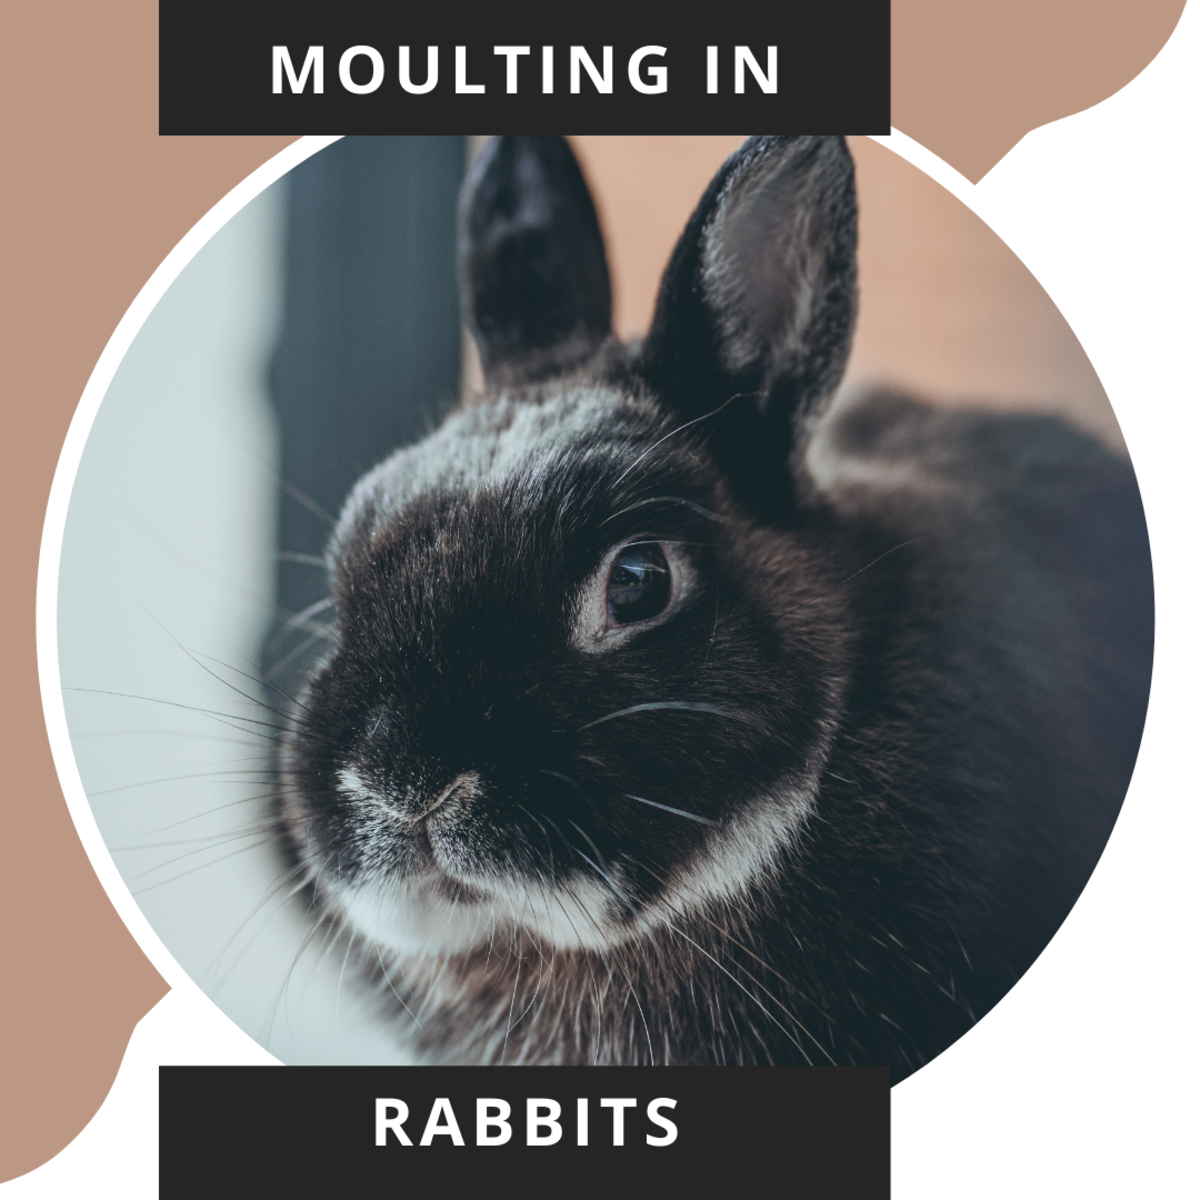 How Moulting in Rabbits Make Them Lose Their Coat